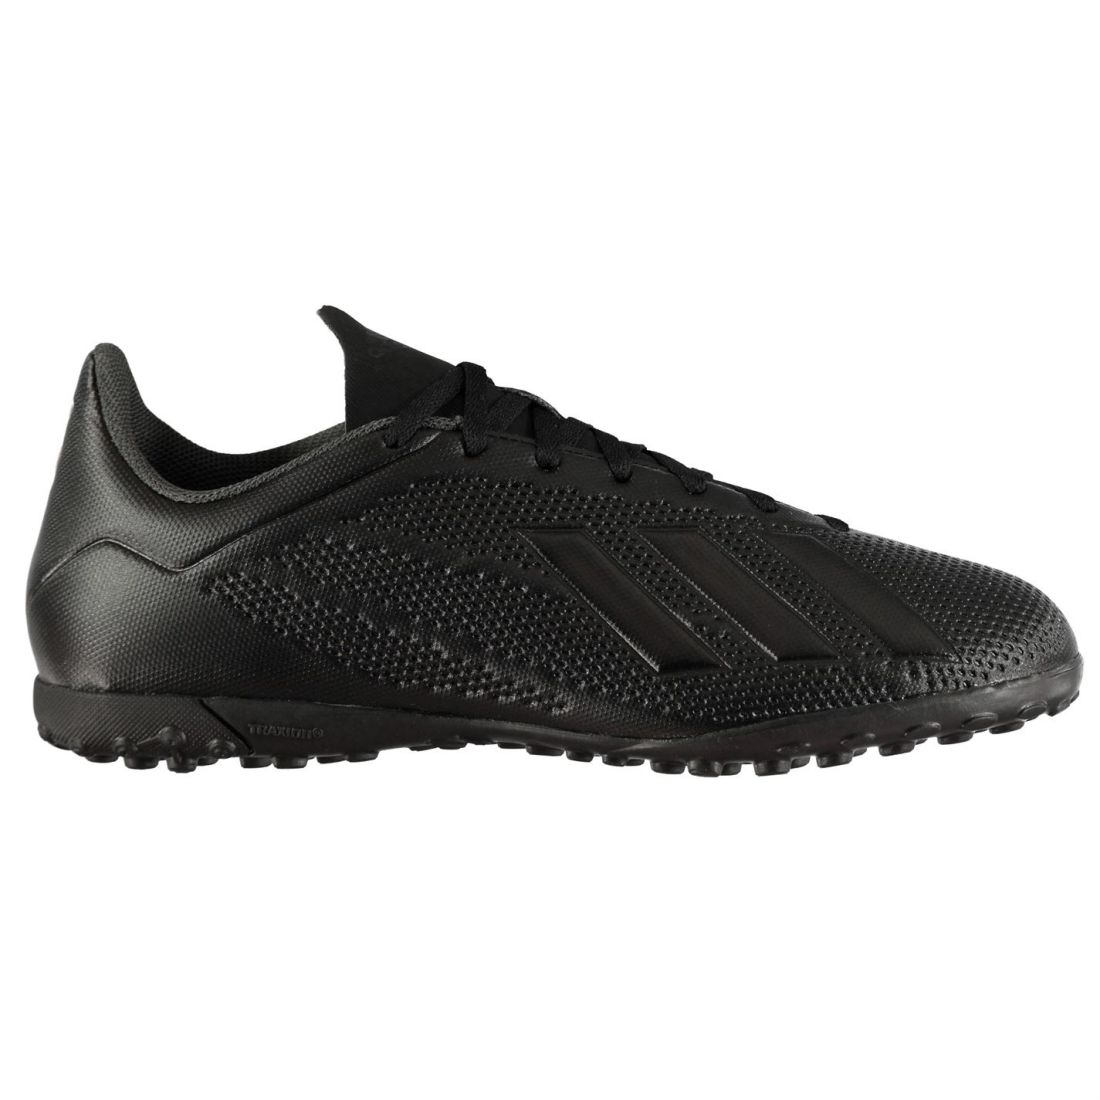 0a51a8100c17 adidas Mens X 18.4 Tango Astro Turf Trainers Football Boots Lace Up ...